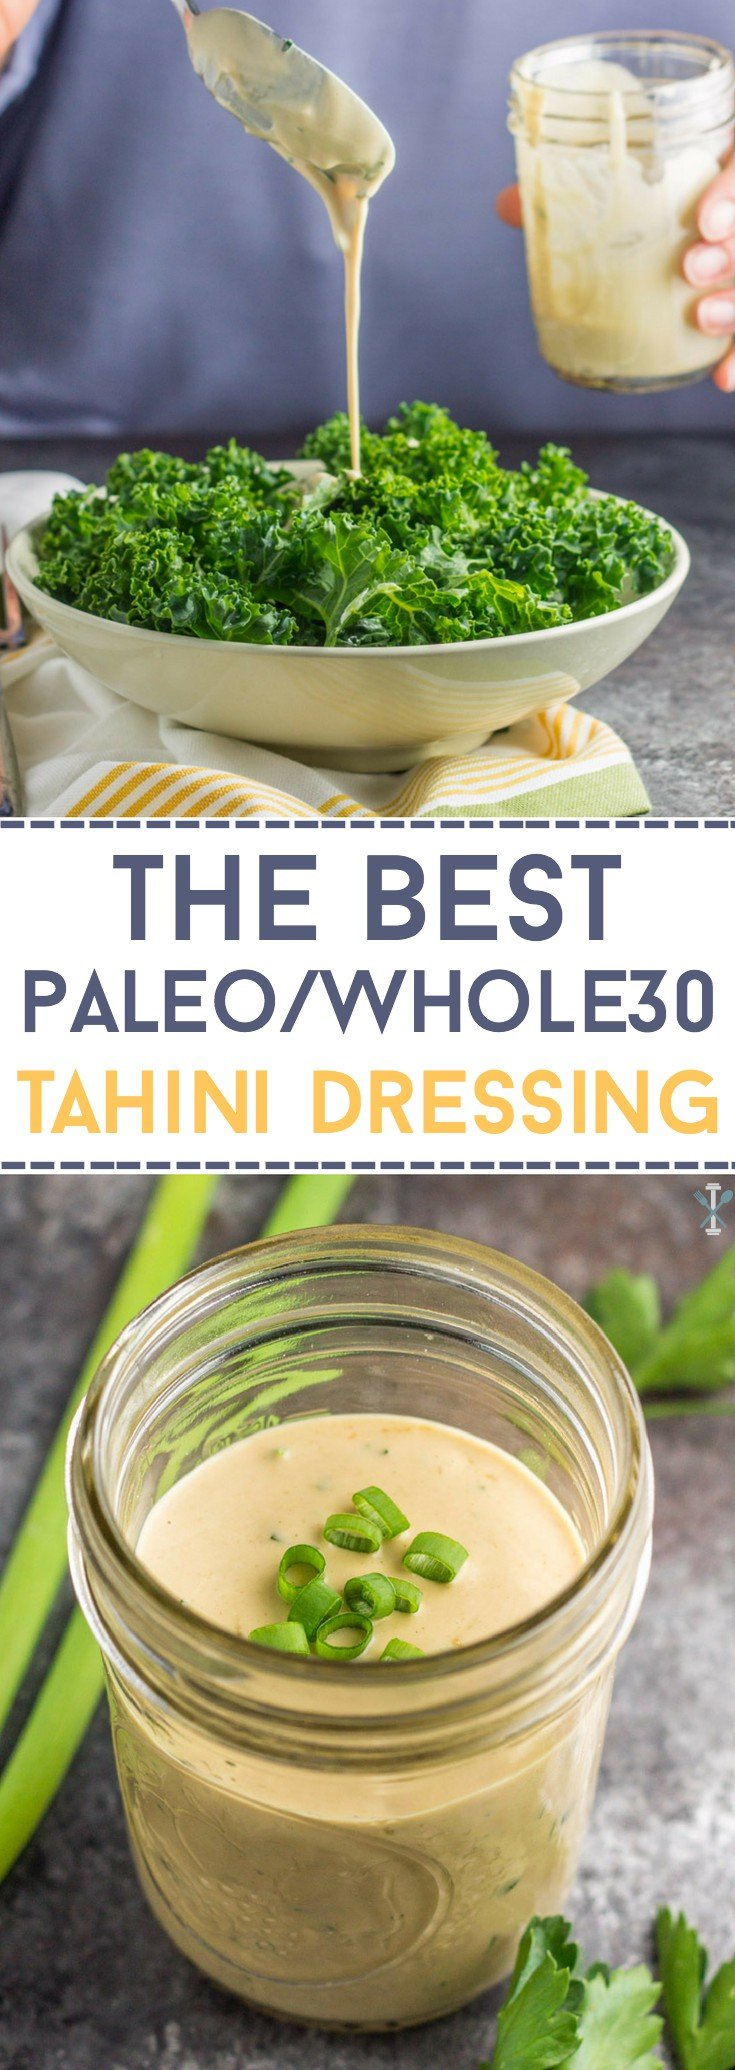 Whole30 dressings to buy